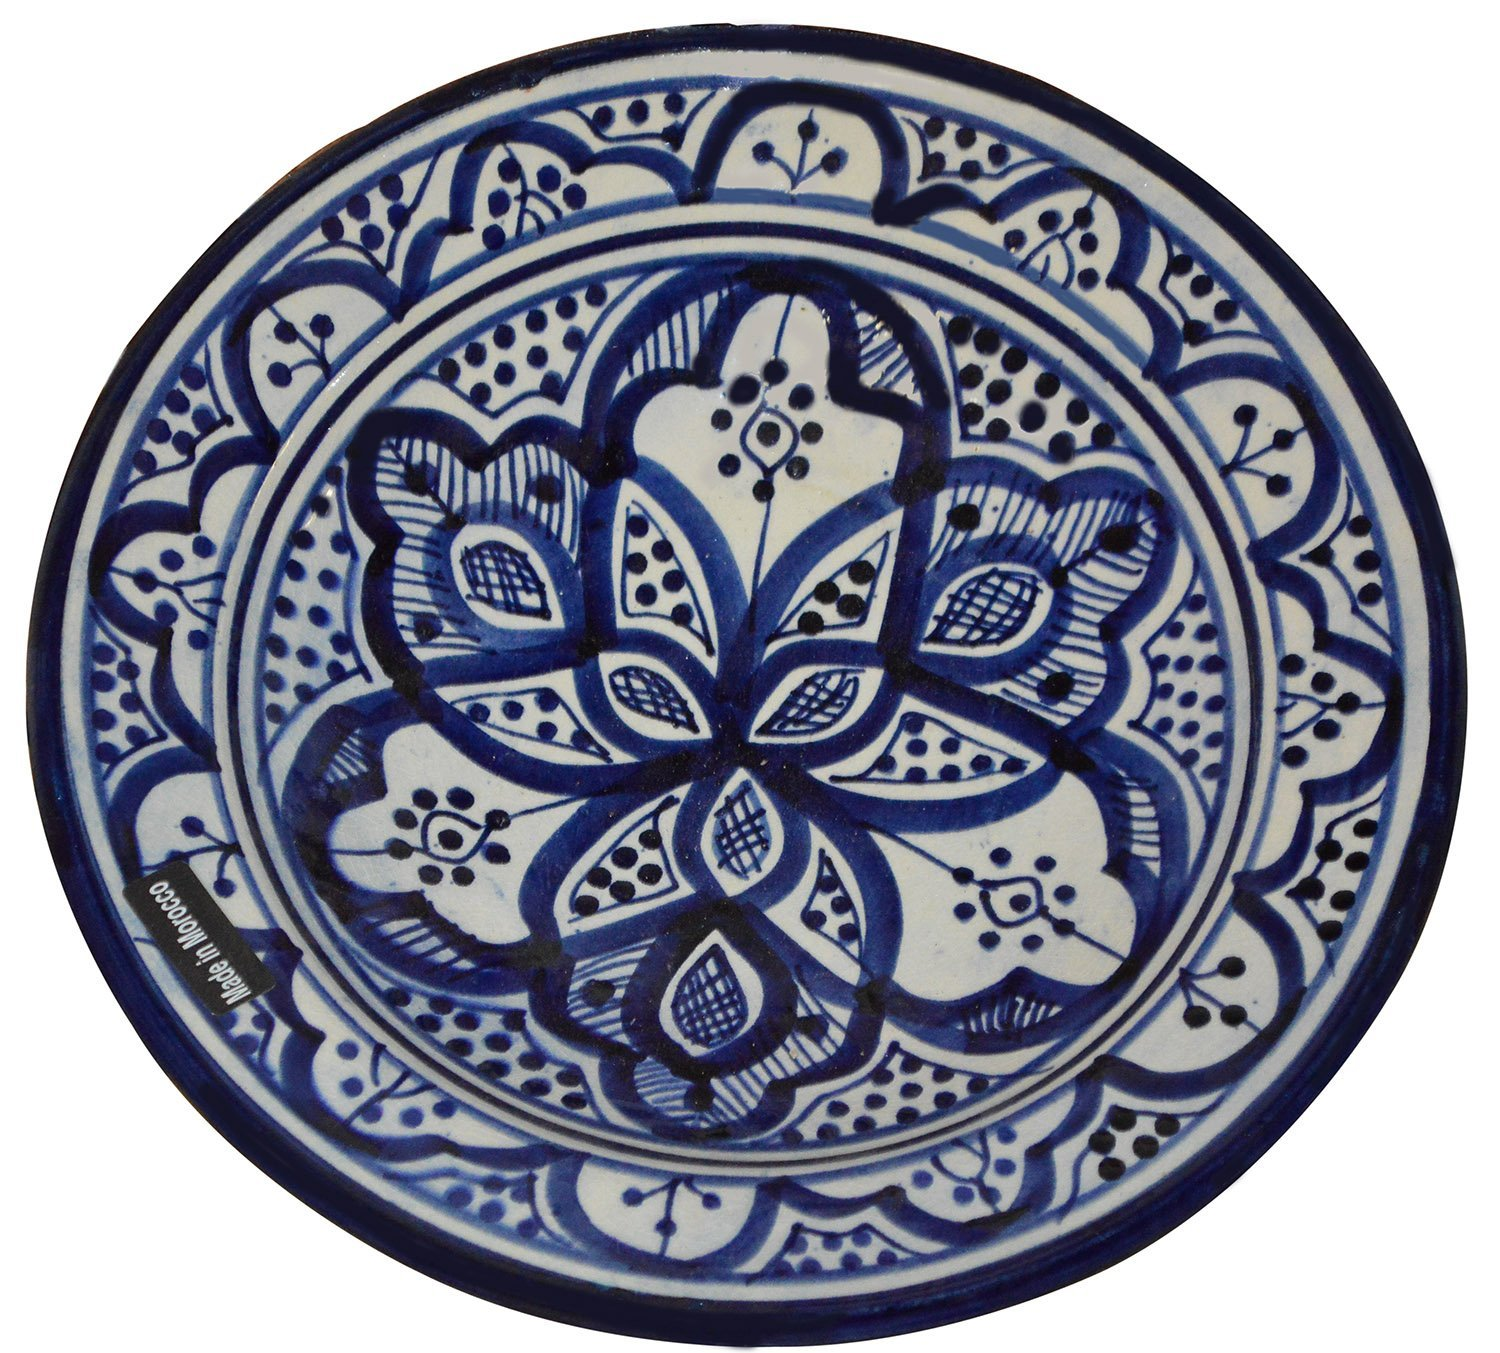 Amazon.com | Ceramic Plates Moroccan Handmade Serving Wall Hanging Exquisite Colors Decorative Large 12 inches Diameter Dinner Plates  sc 1 st  Amazon.com & Amazon.com | Ceramic Plates Moroccan Handmade Serving Wall Hanging ...